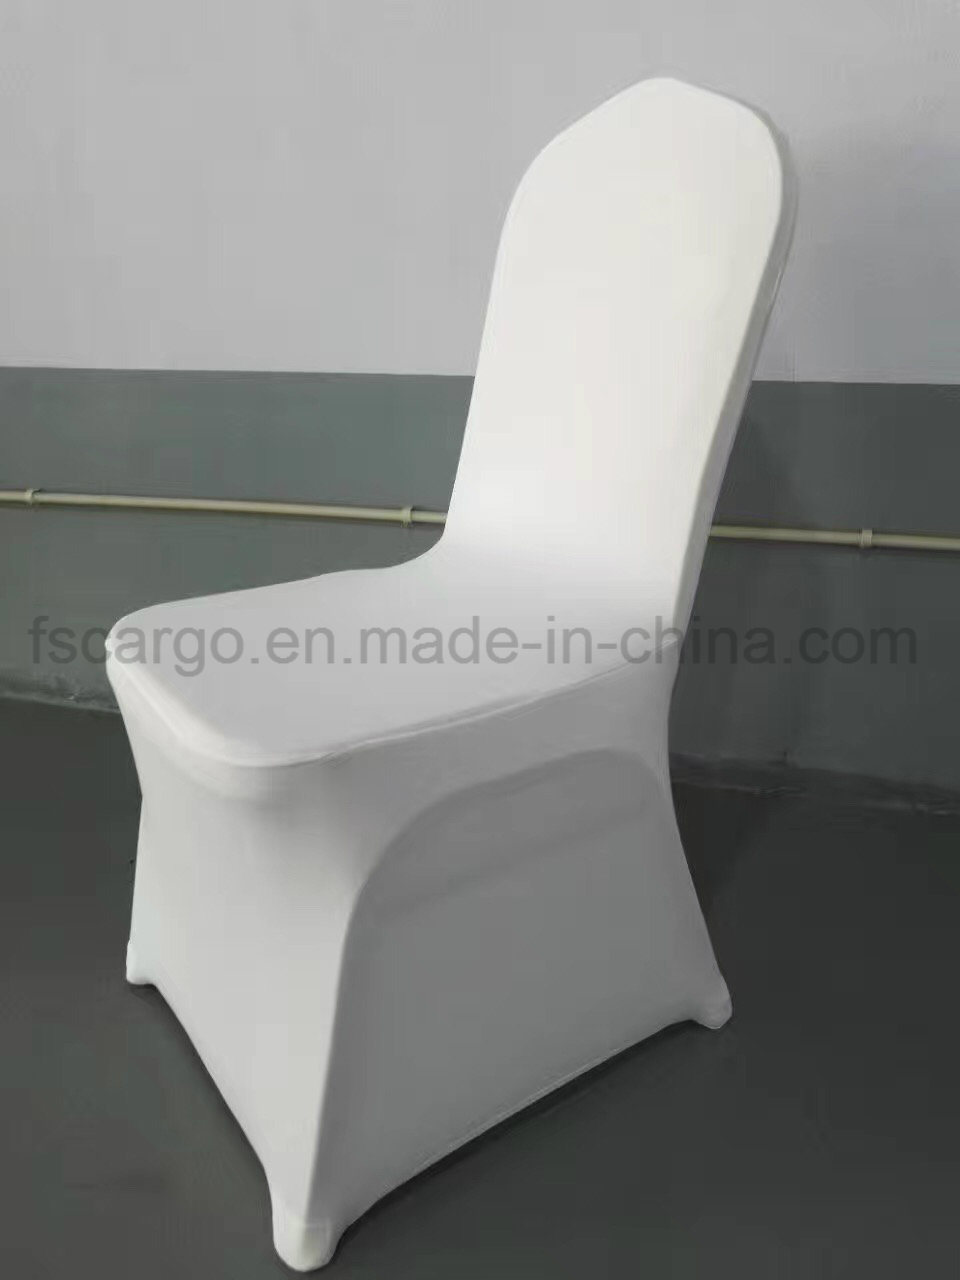 Awe Inspiring China White Color Hot Sell Lycra Chair Cover For Wedding Machost Co Dining Chair Design Ideas Machostcouk